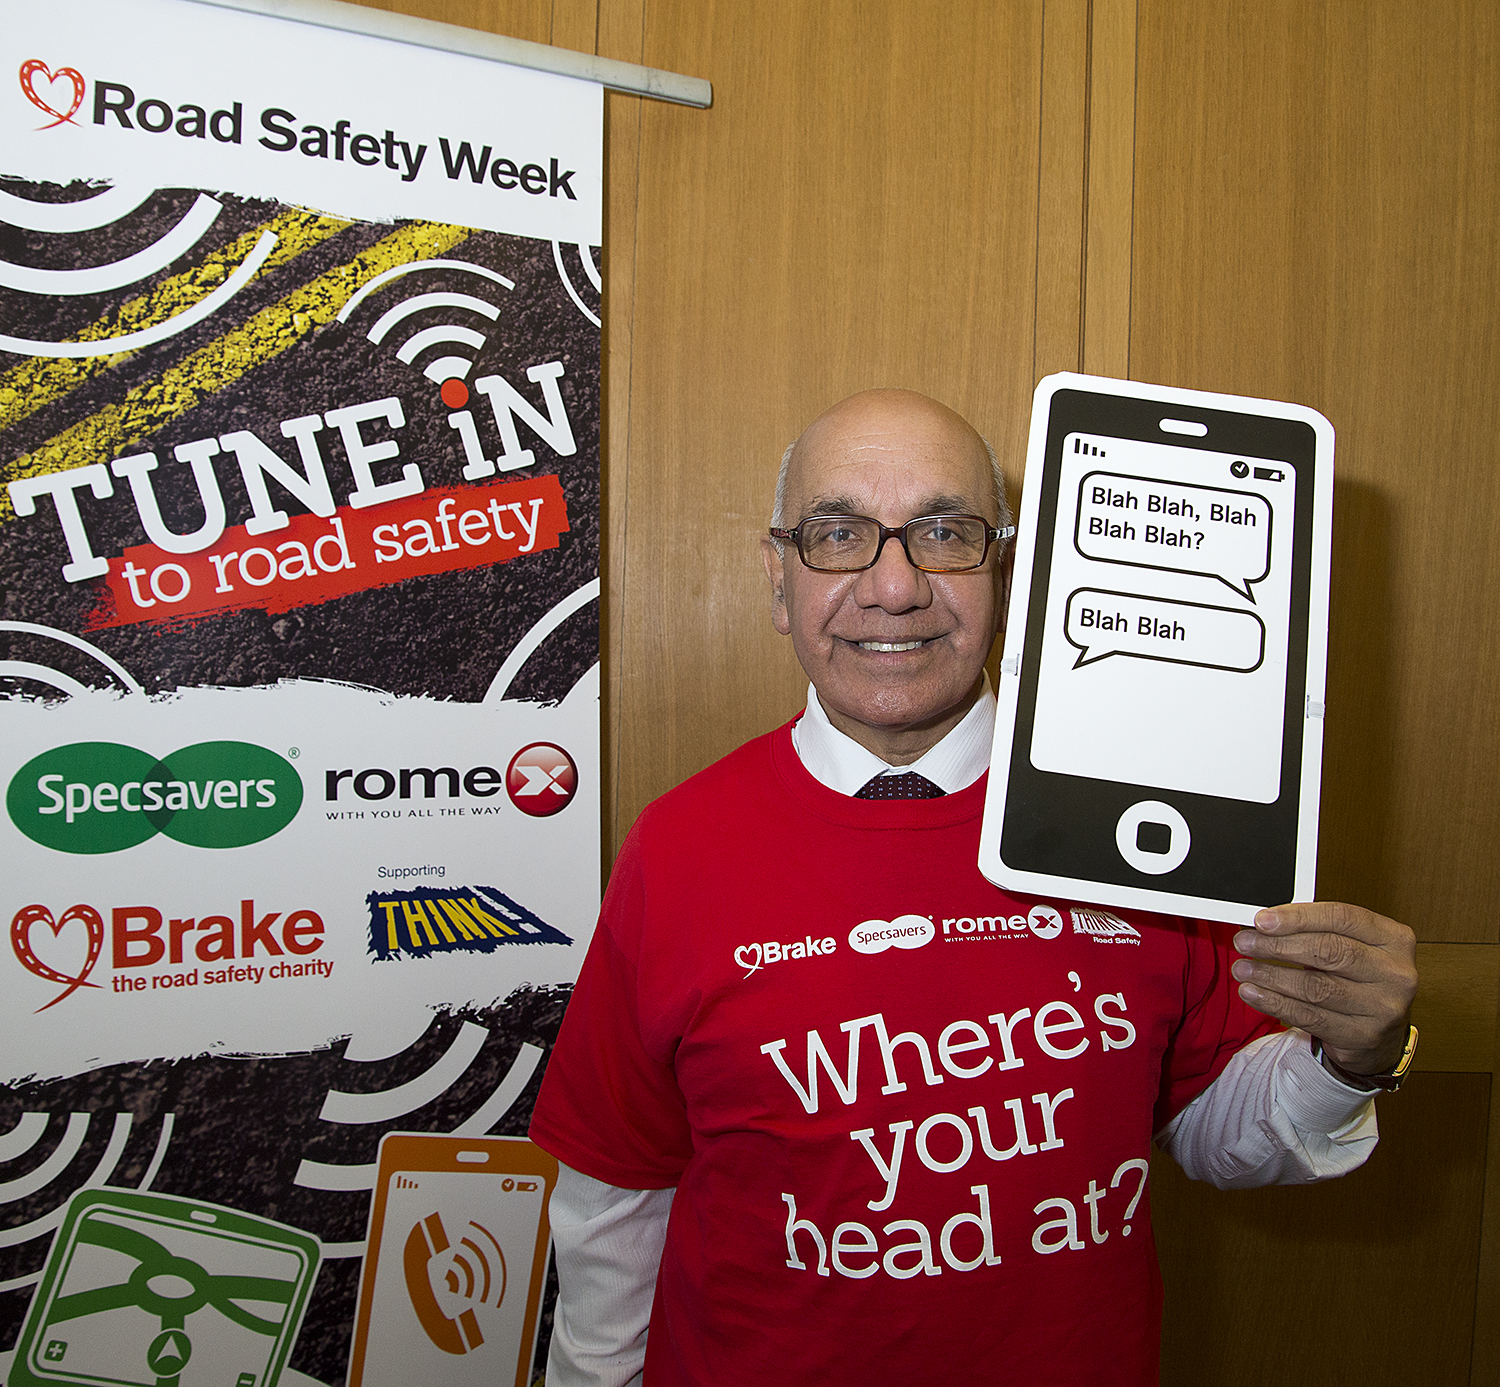 DSC_2088_-_Road_Safety_week.jpg